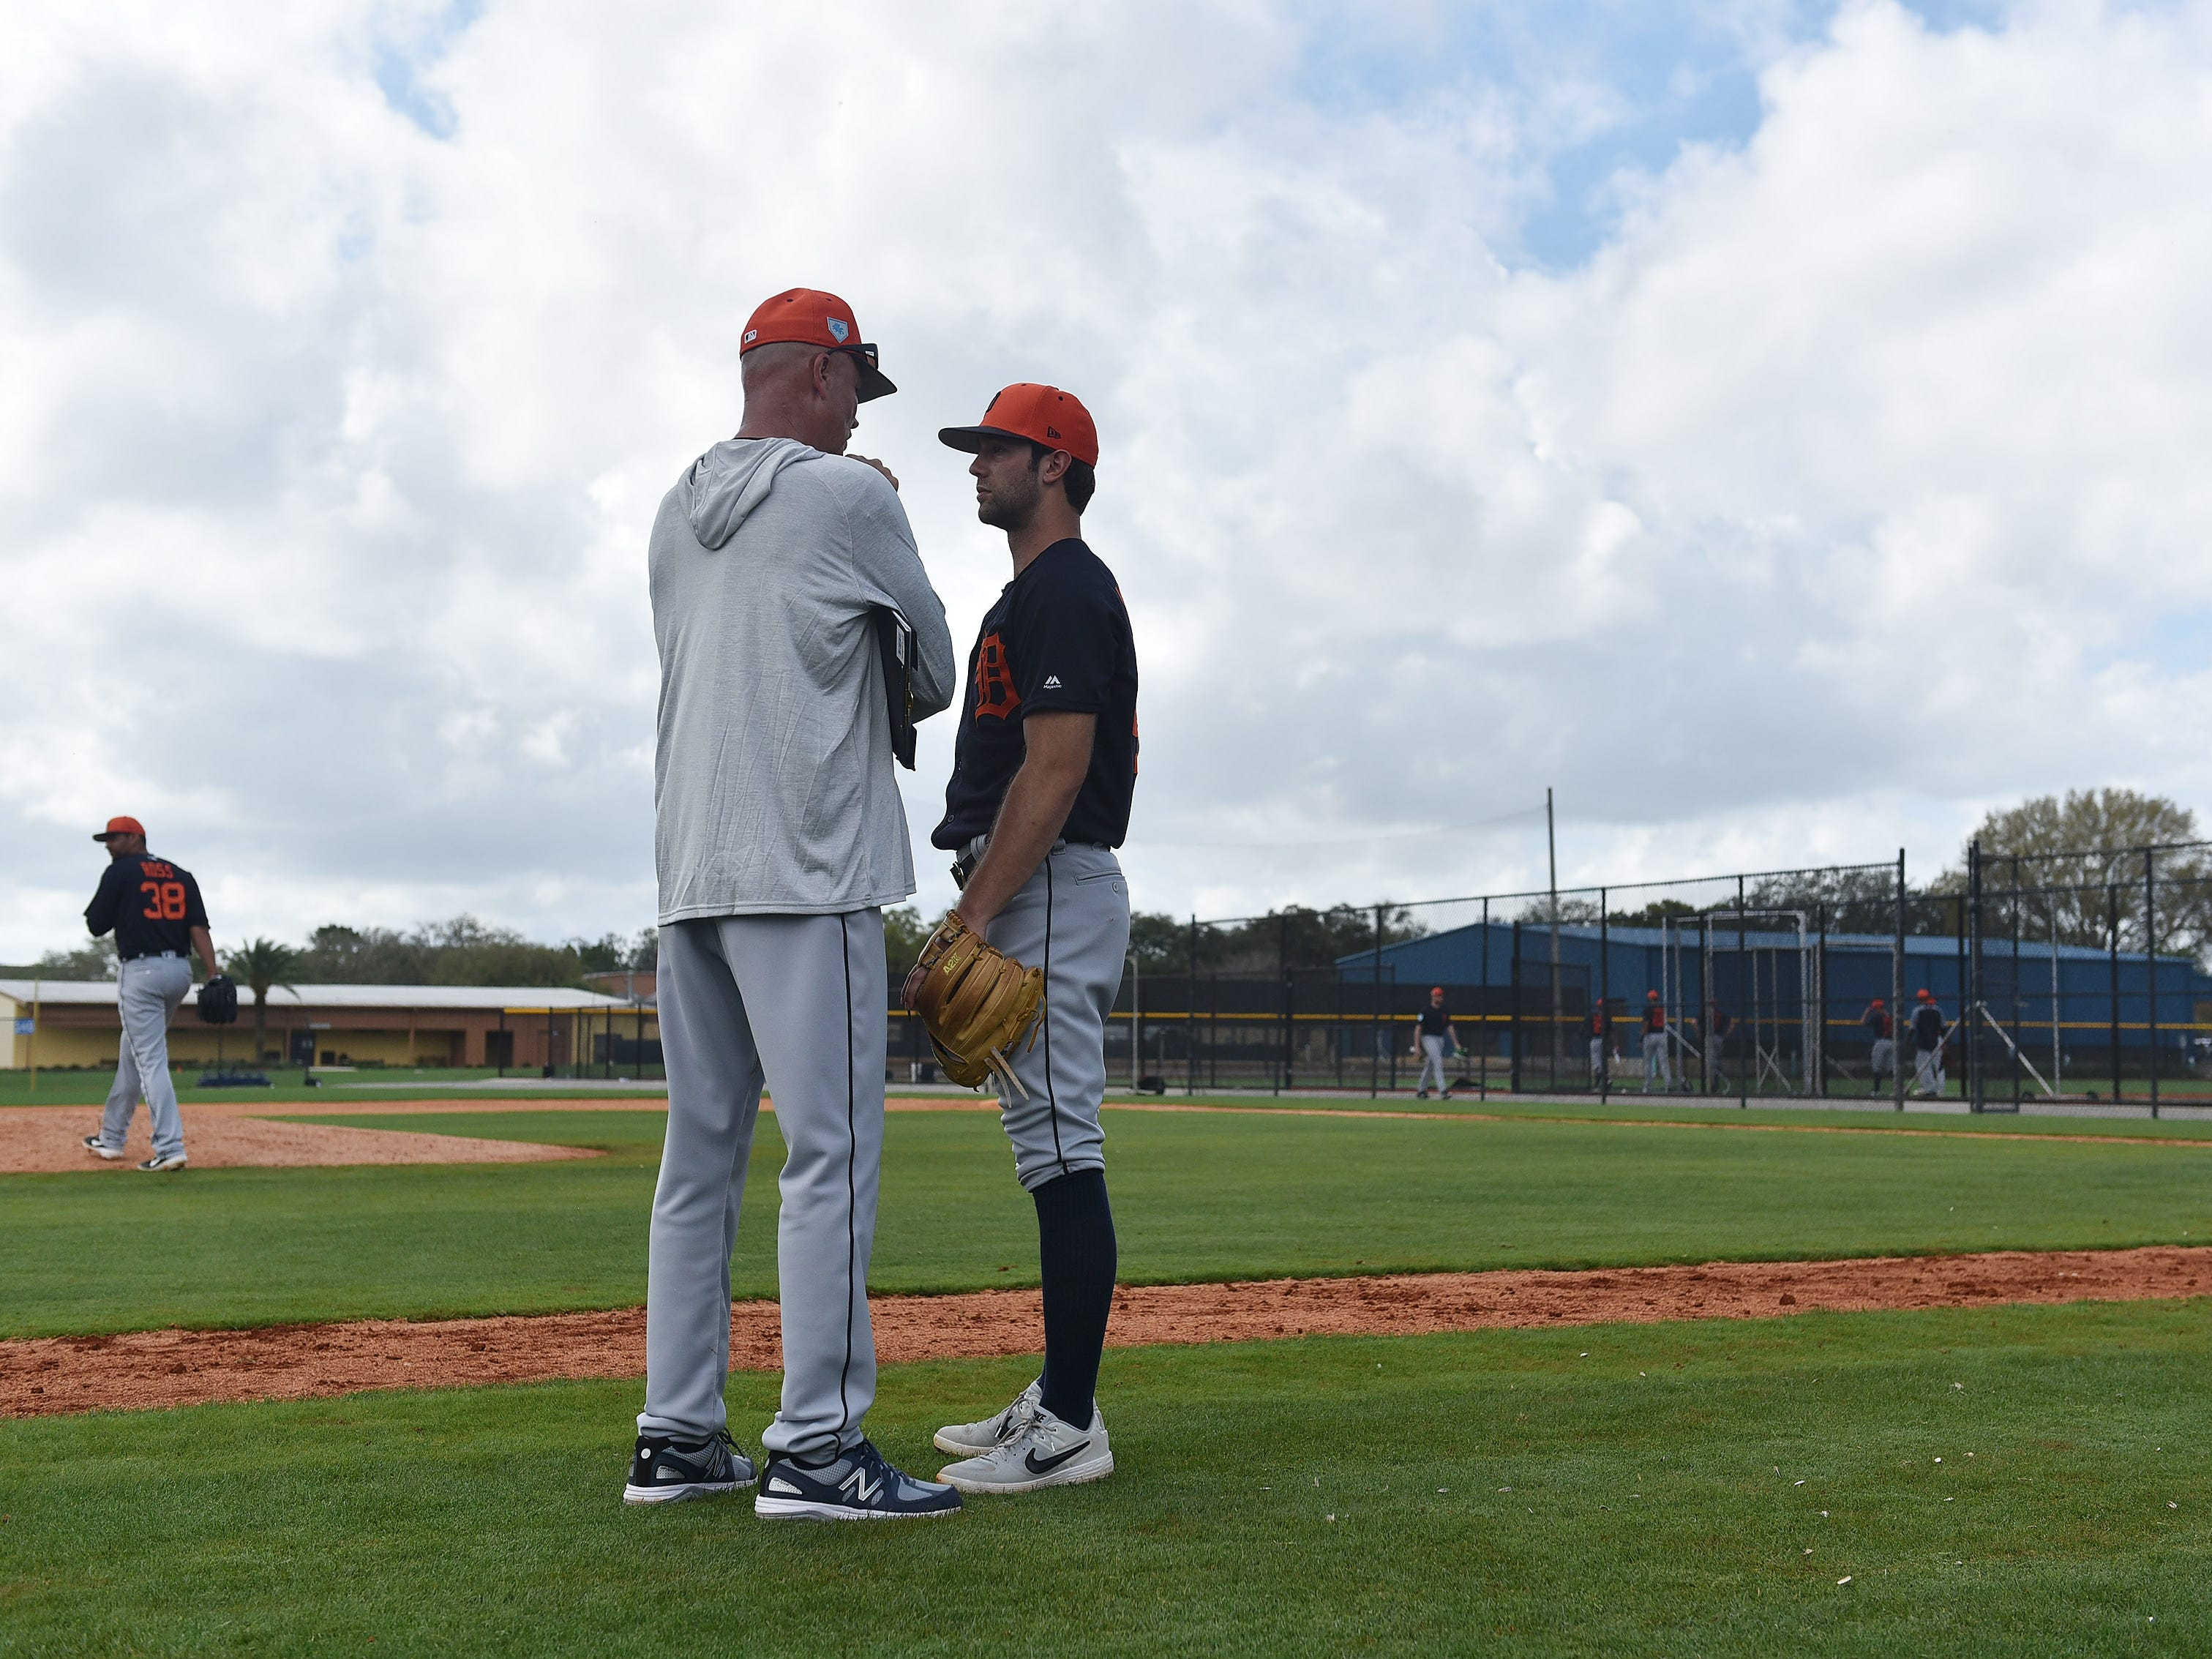 Tigers bench coach Steve Liddle talks with pitcher Daniel Norris.